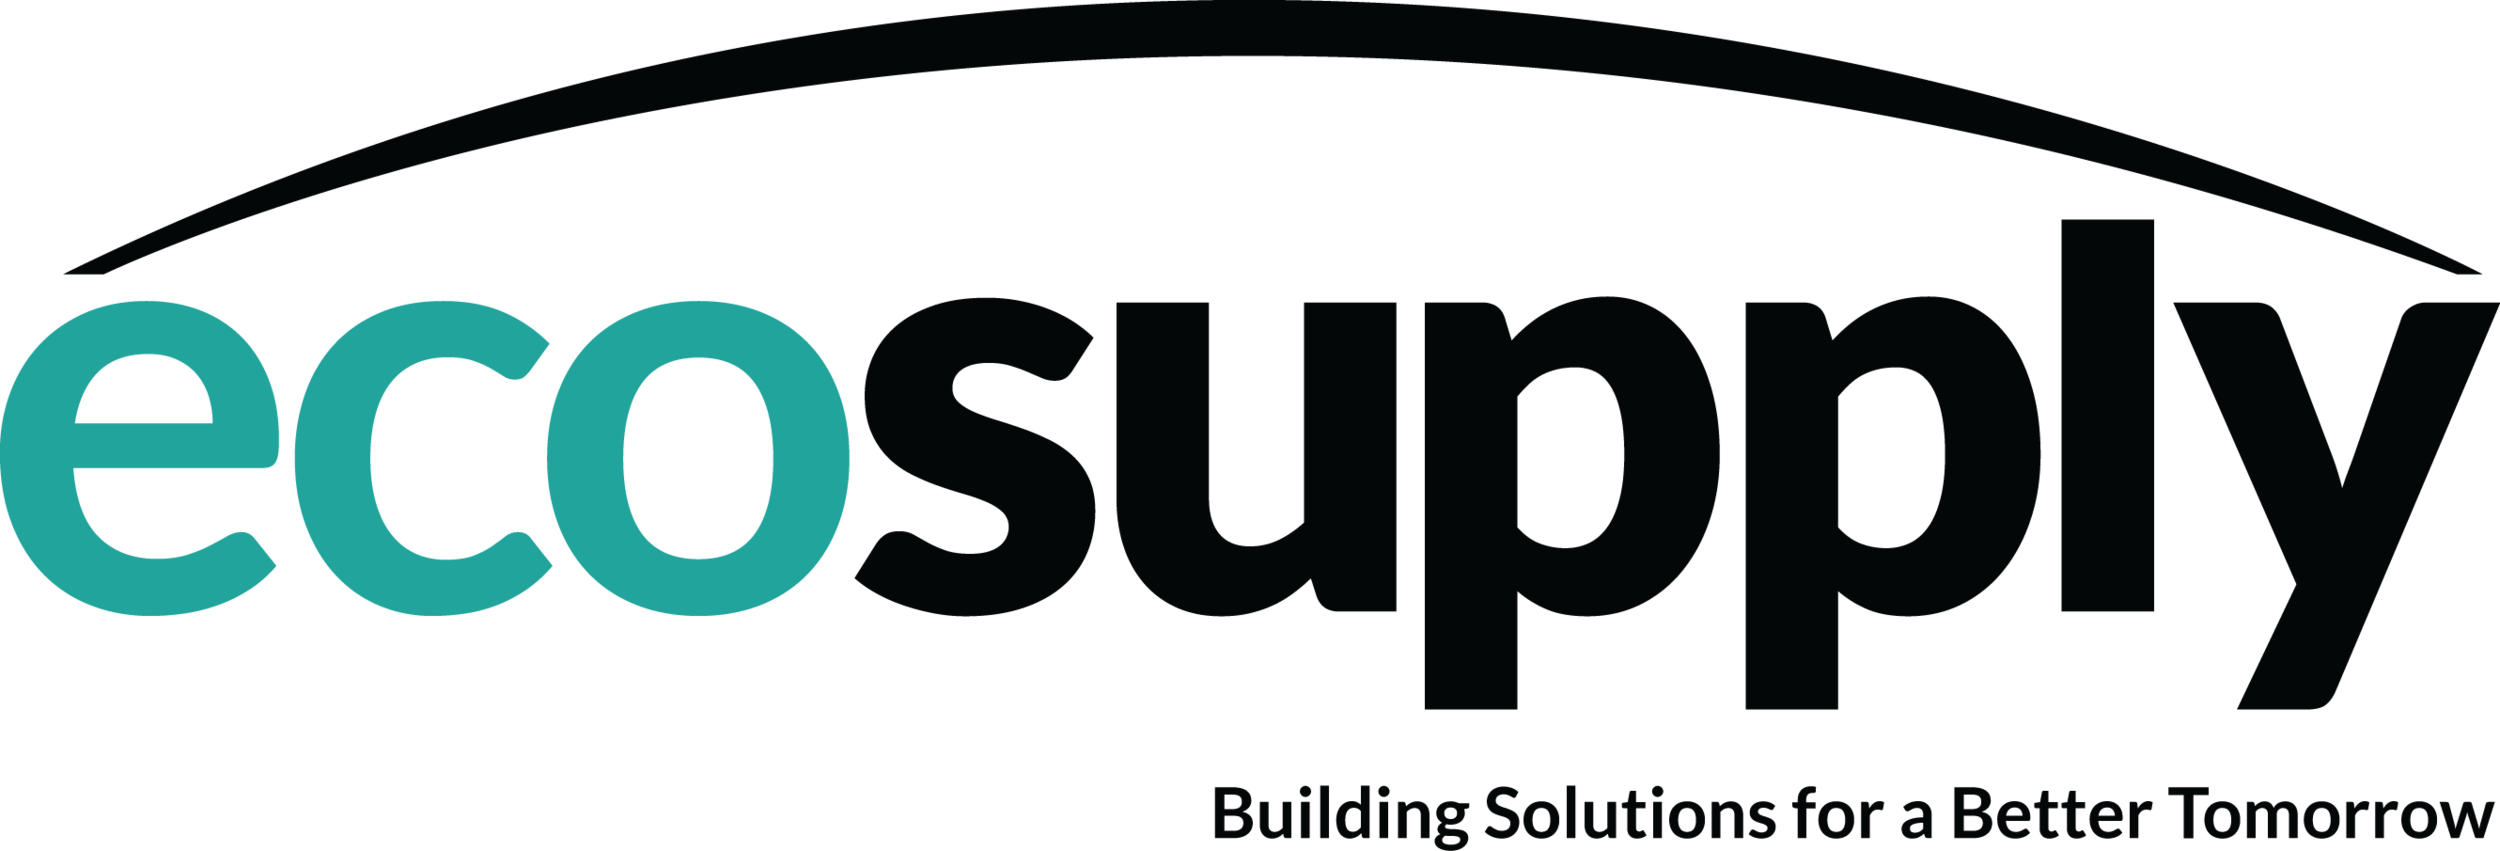 ecosupply-logo-transparent.png